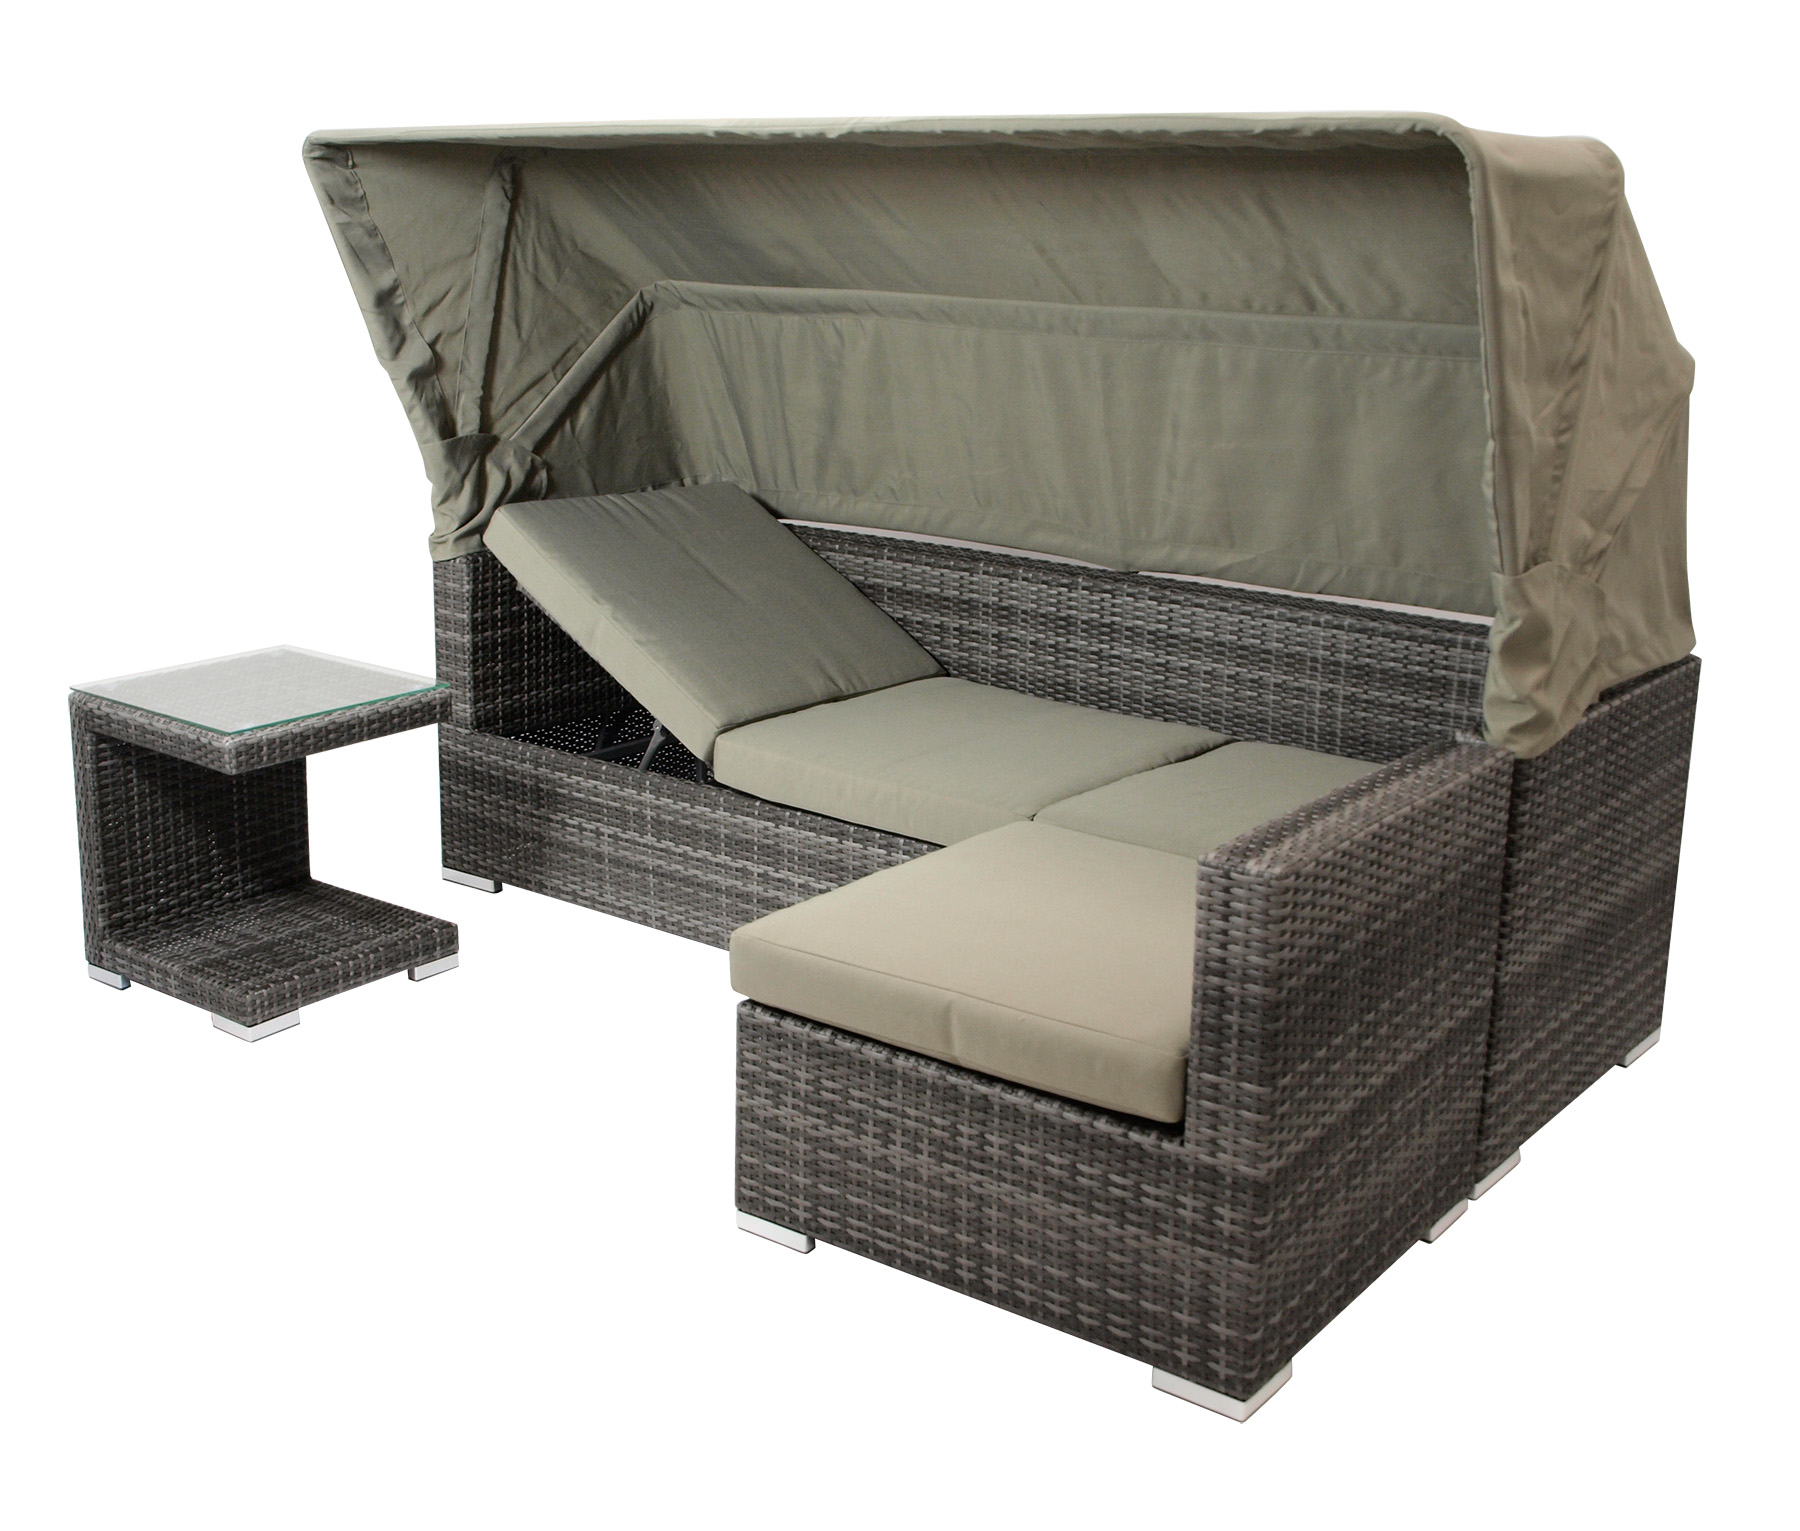 loungeset sitzgruppe liege gartenm bel lounge manacor alu rattan grau 2 wahl ebay. Black Bedroom Furniture Sets. Home Design Ideas